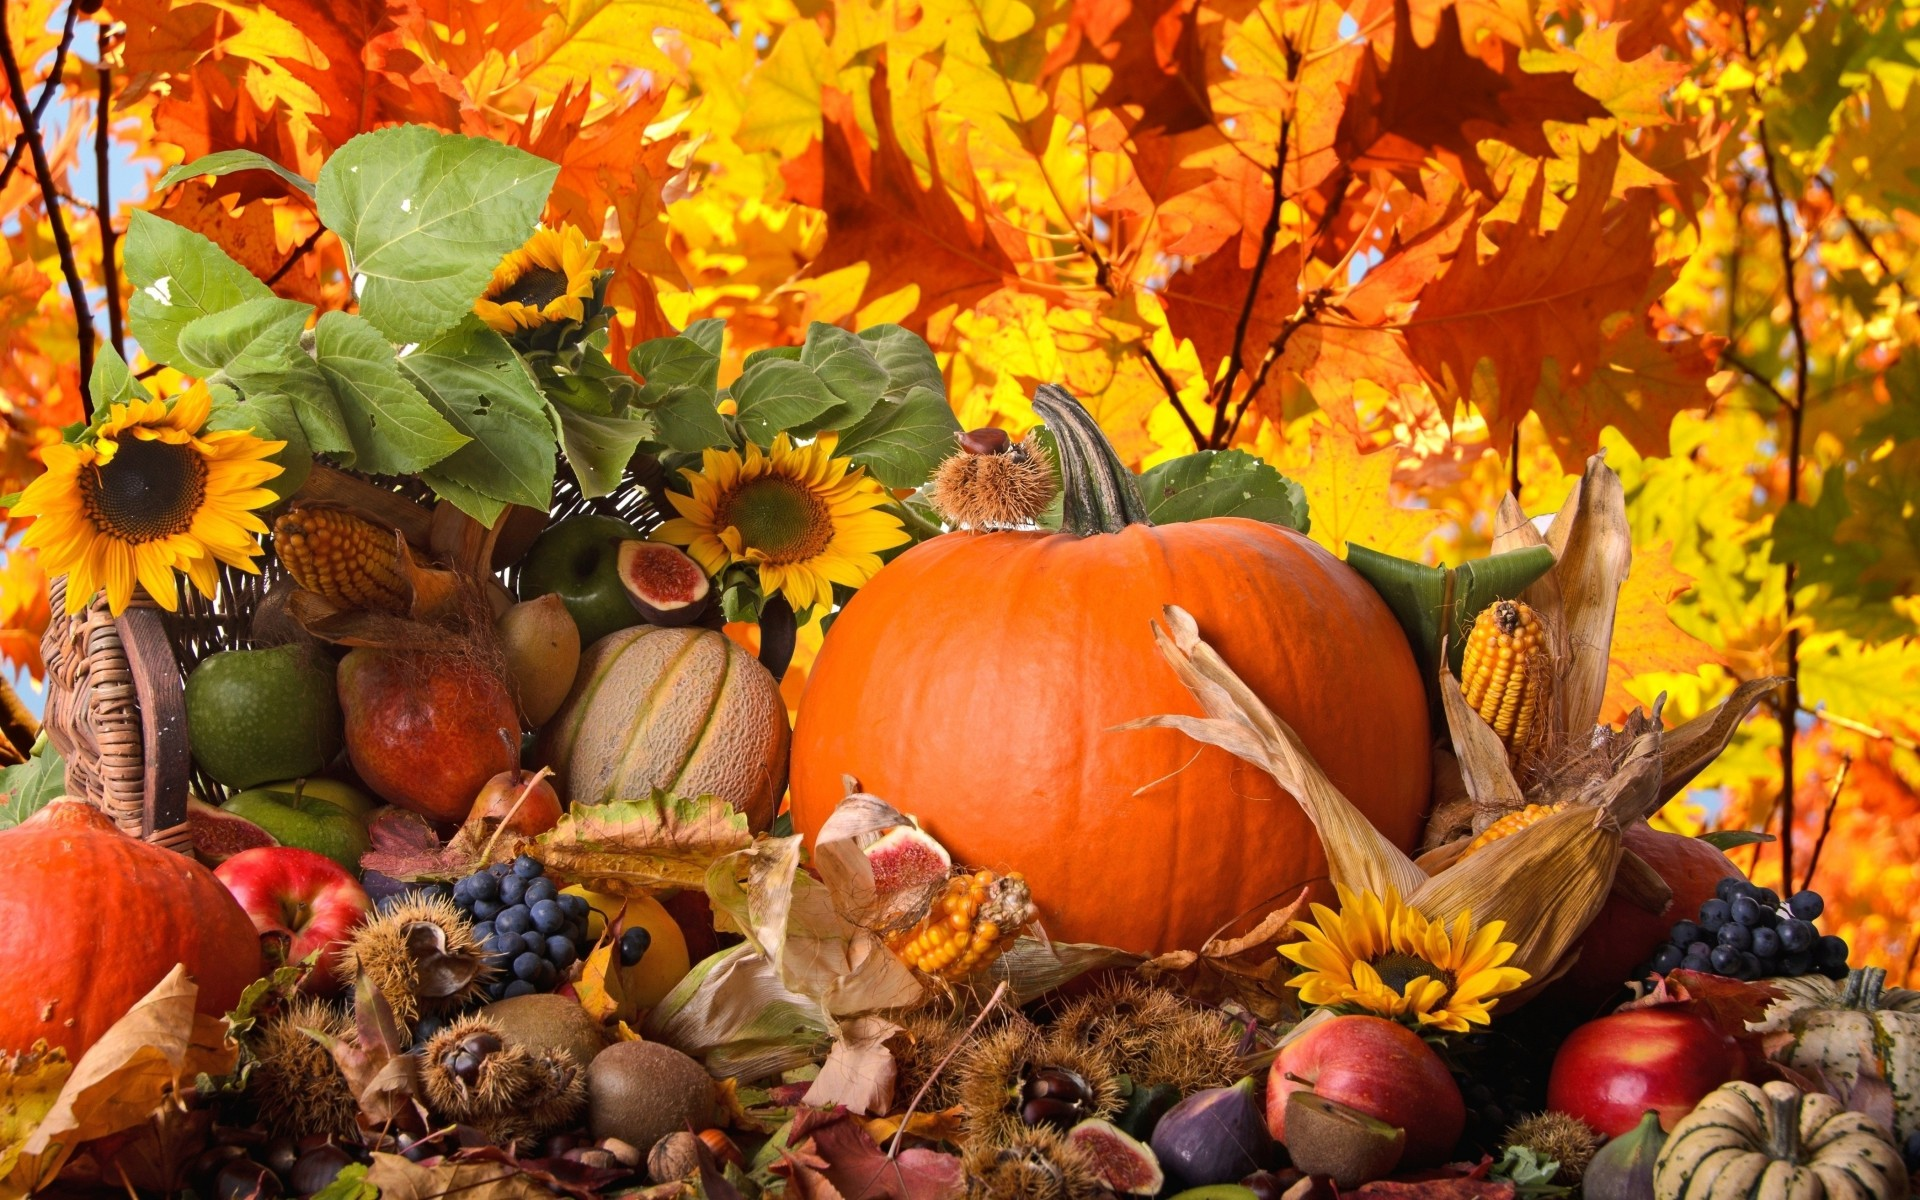 Thanksgiving Wallpapers HD for Desktop 75 images 1920x1200